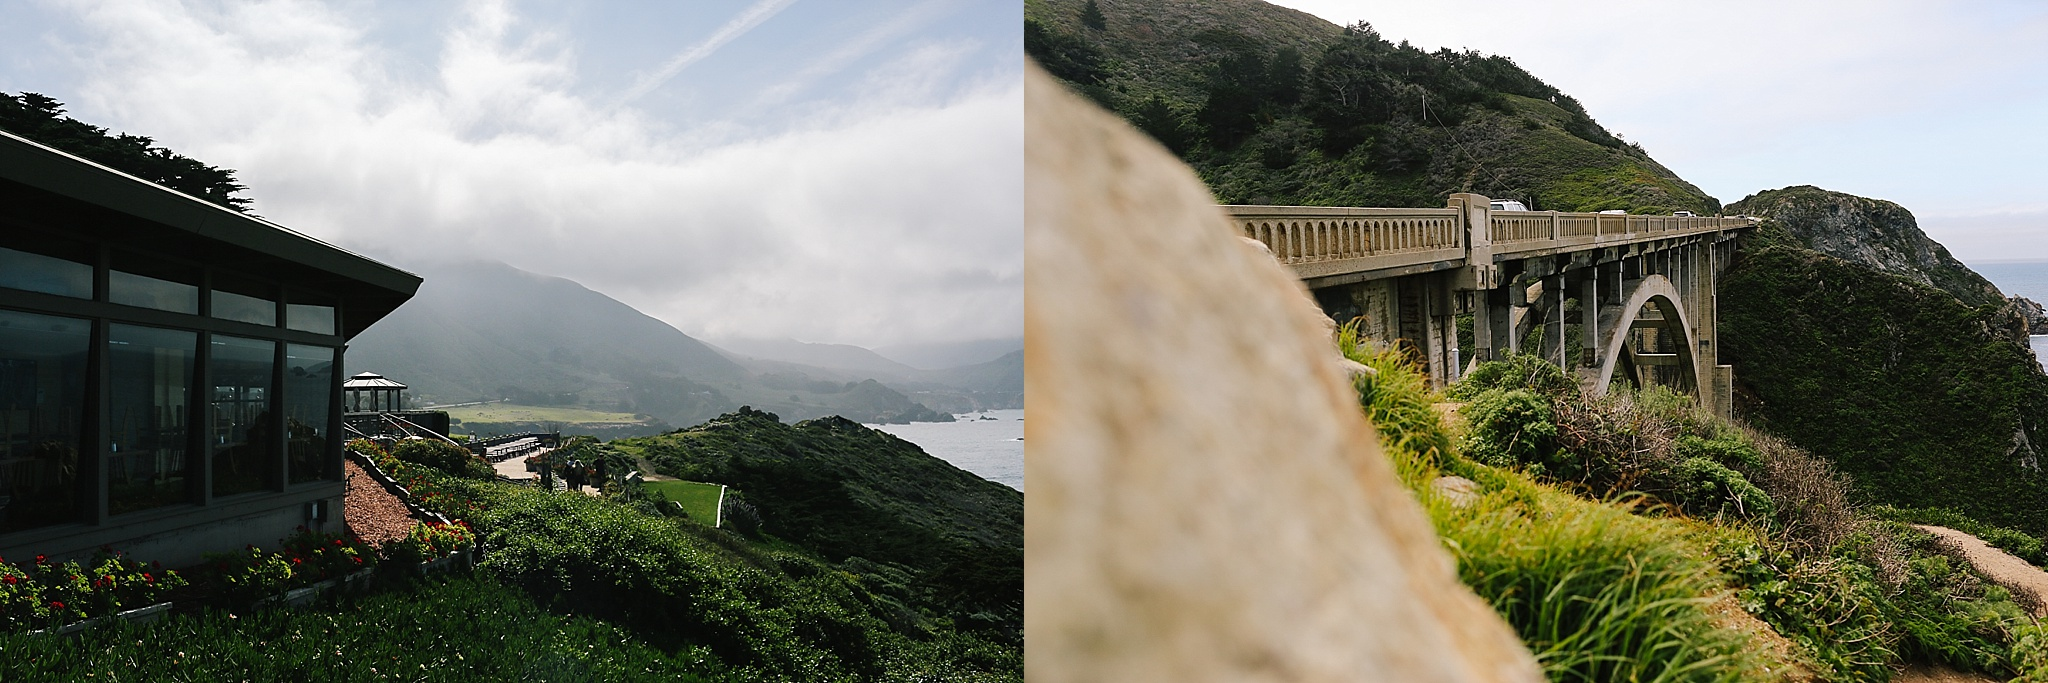 Big Sur & Bixby Bridge